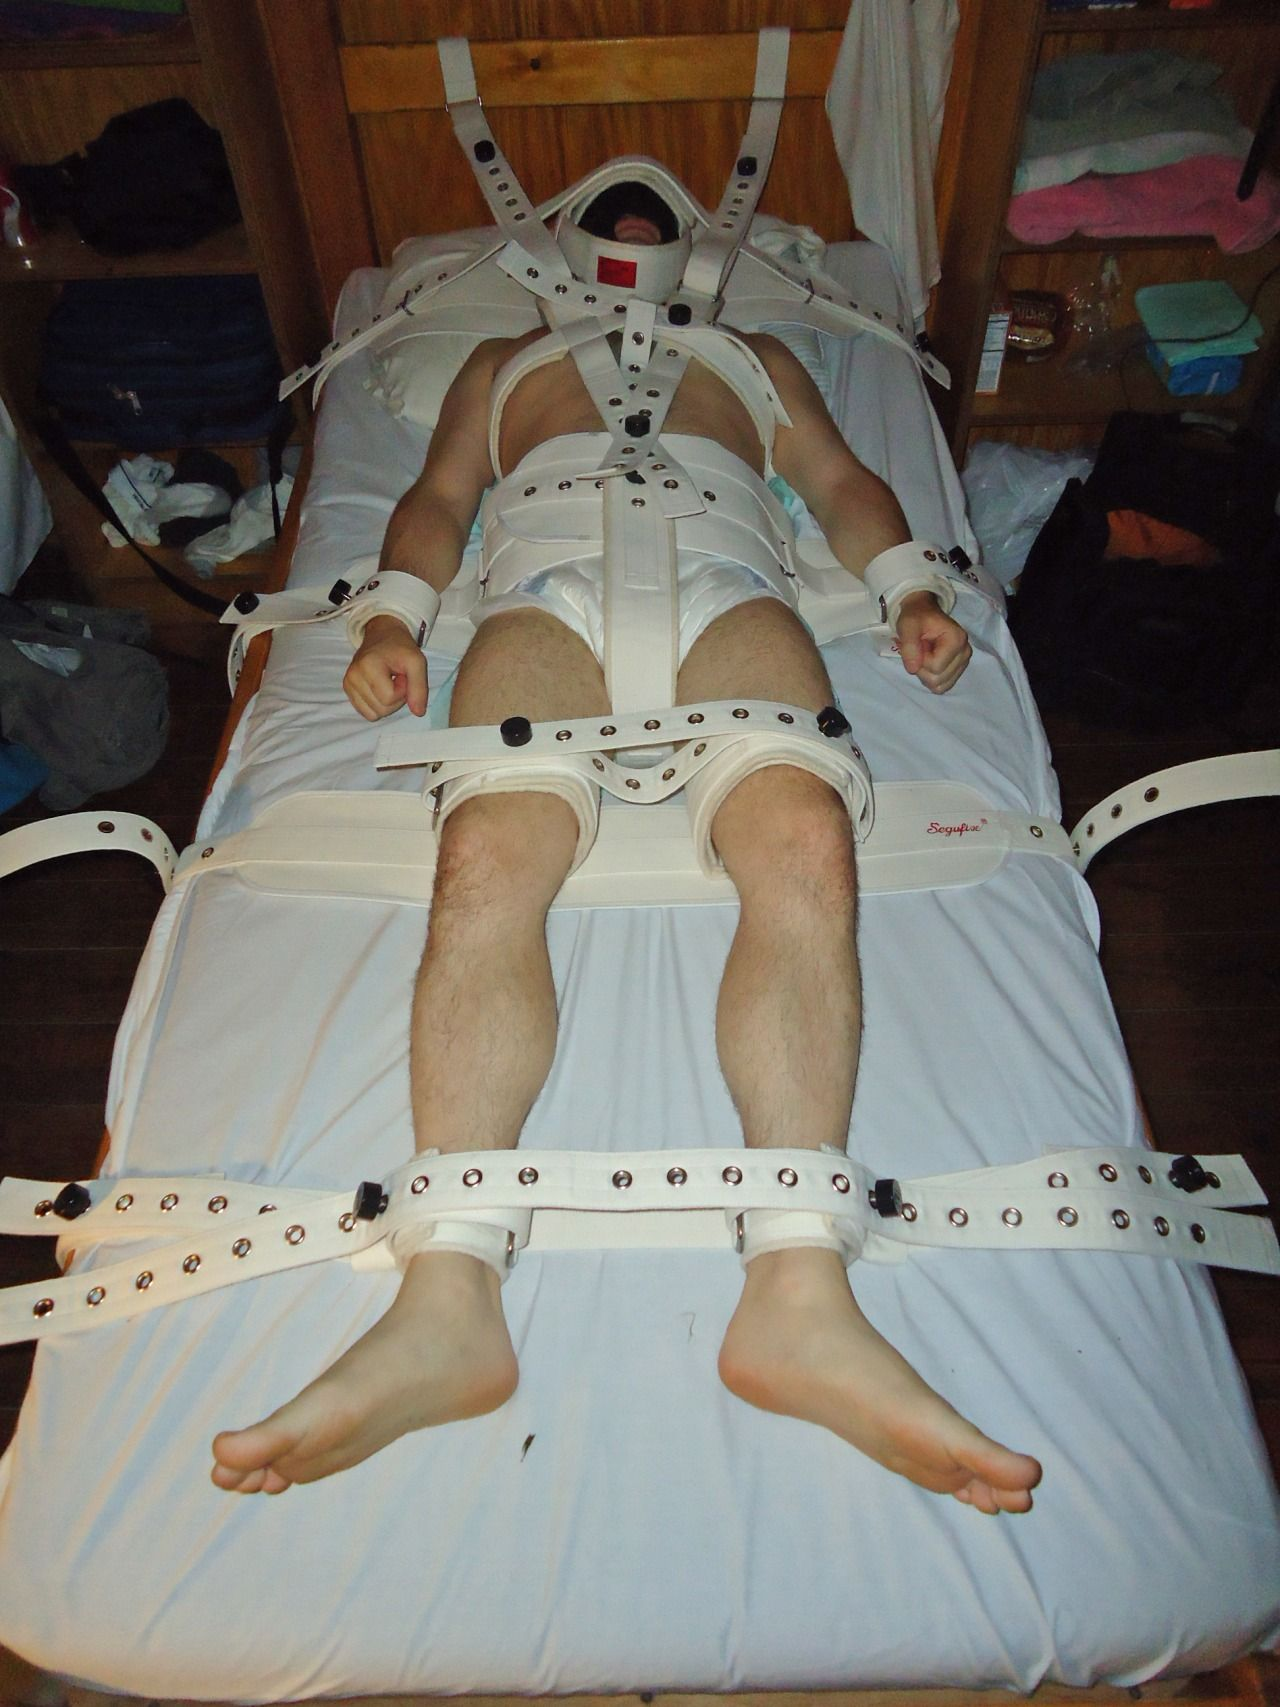 Medical fetish and restrained in diapers